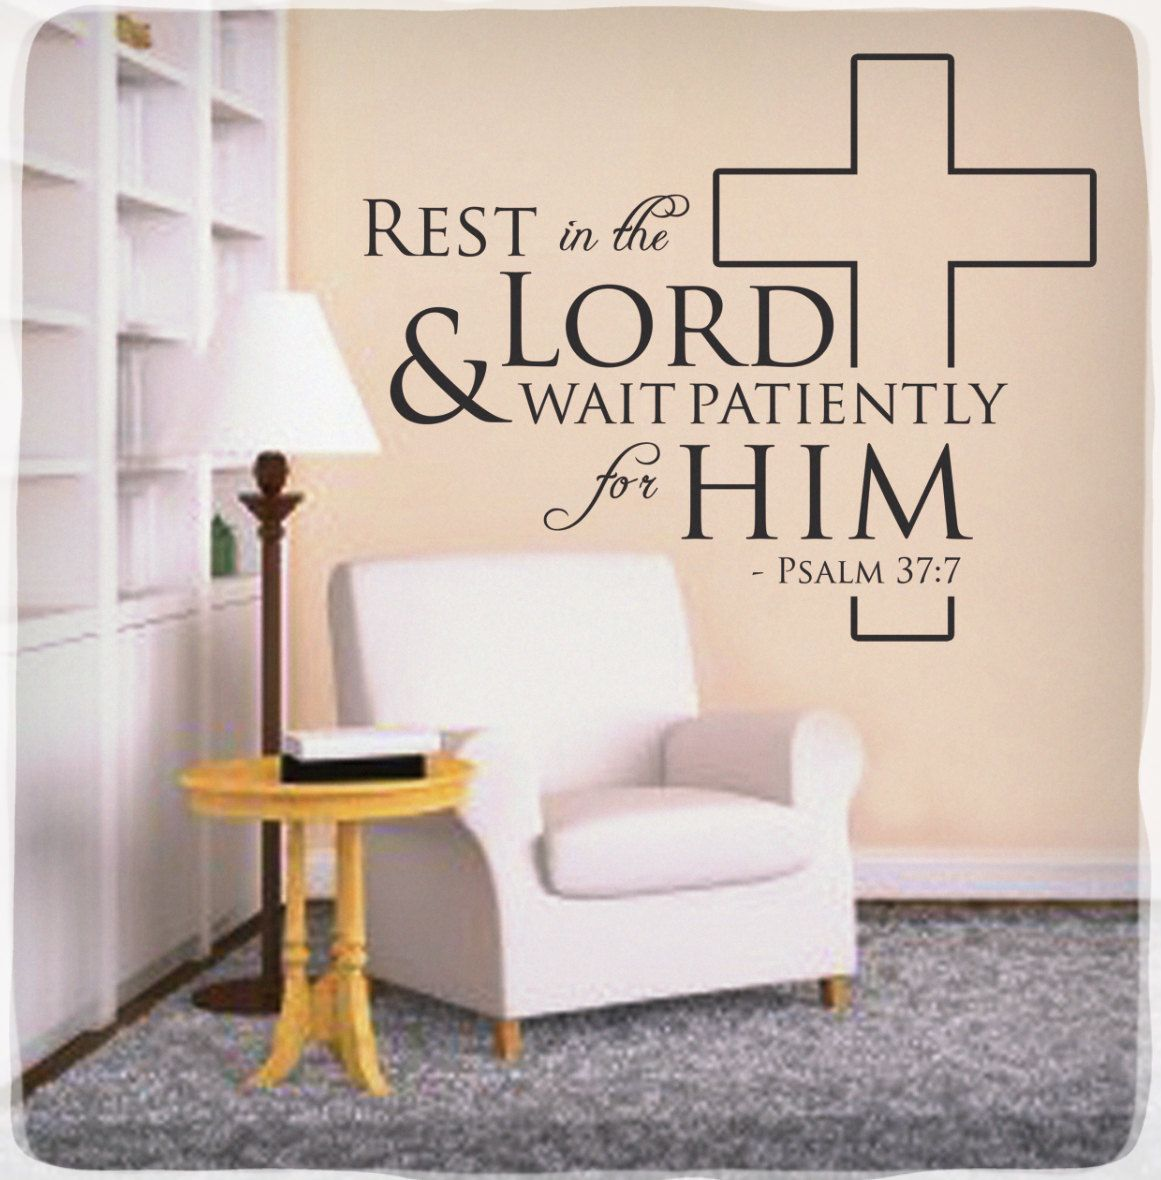 Psalms wall decals christian wall decals ine walls - Rest In The Lord Wall Decal Sticker Psalm 37 7 Christian Bible Quote Verse